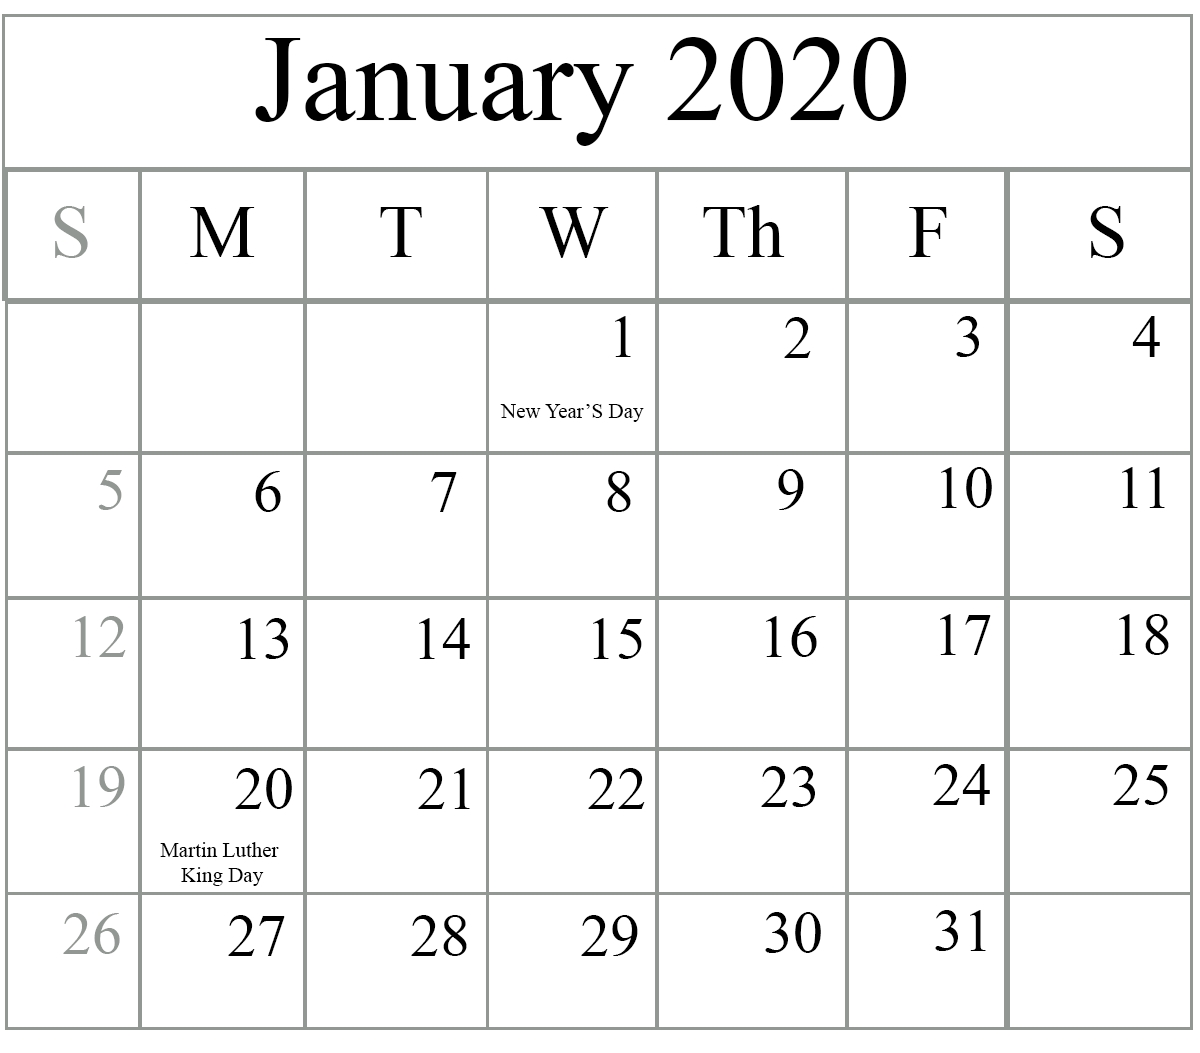 Free January 2020 Printable Calendar In Pdf, Excel & Word with regard to Blank 2020 Calendars To Edit